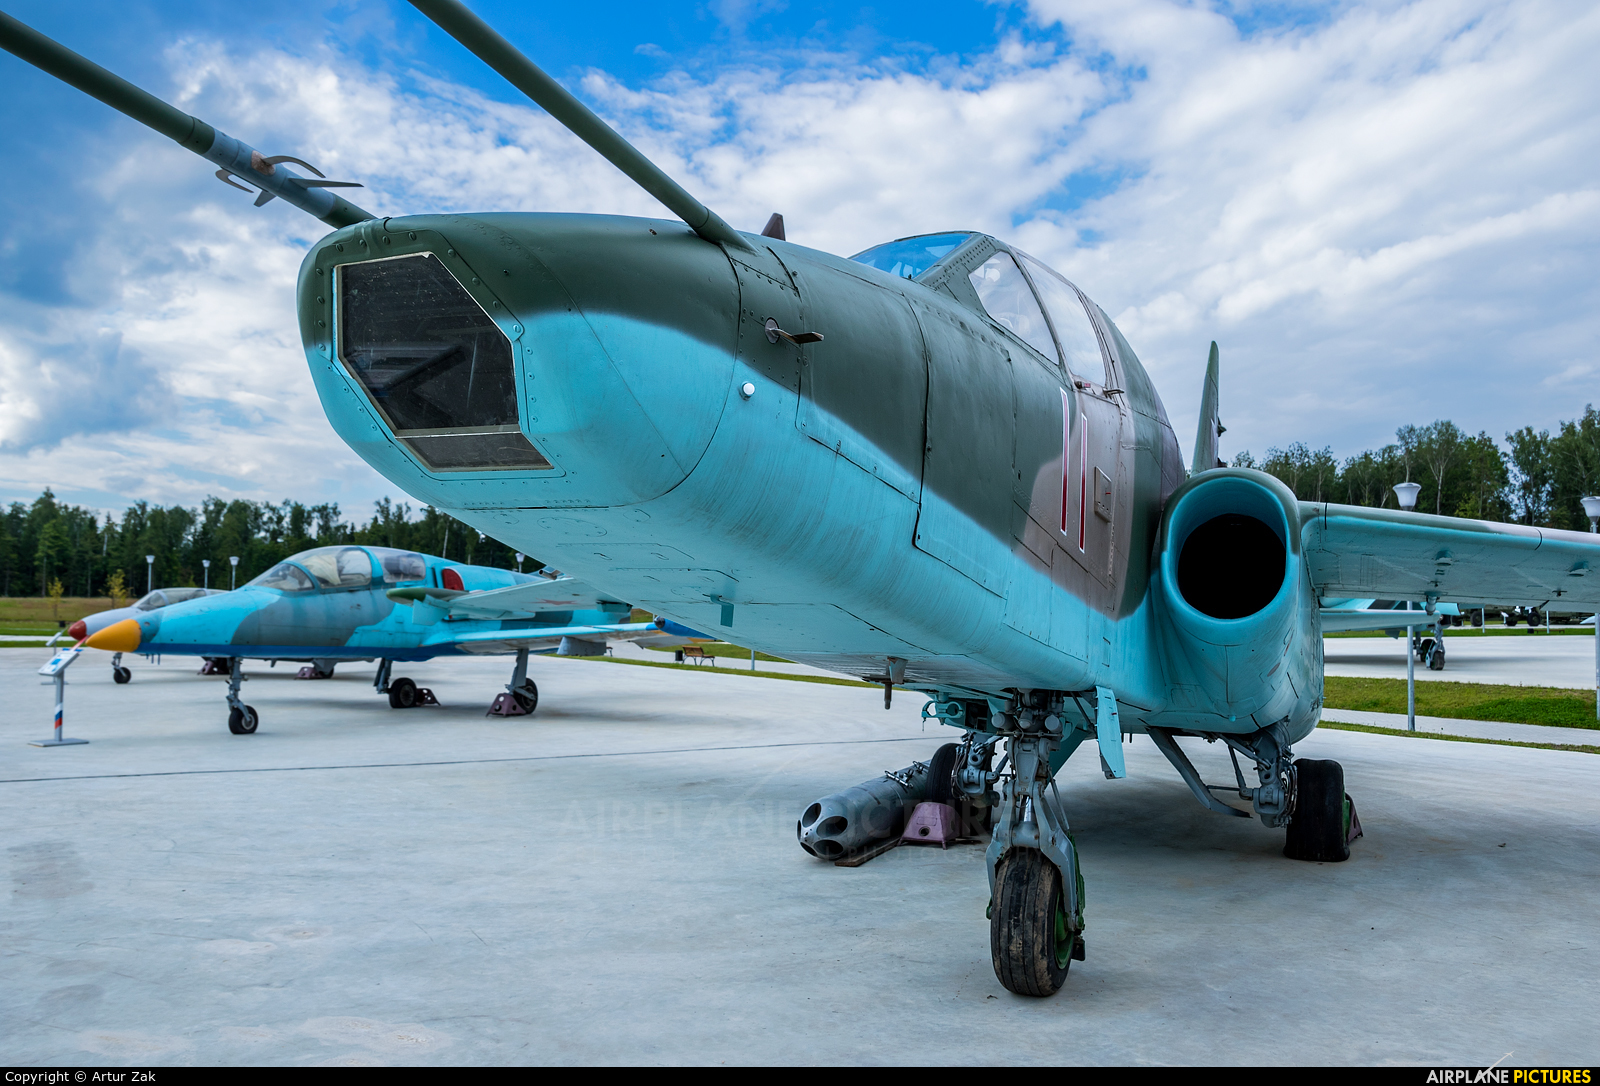 Russia - Air Force 71 aircraft at Off Airport - Russia